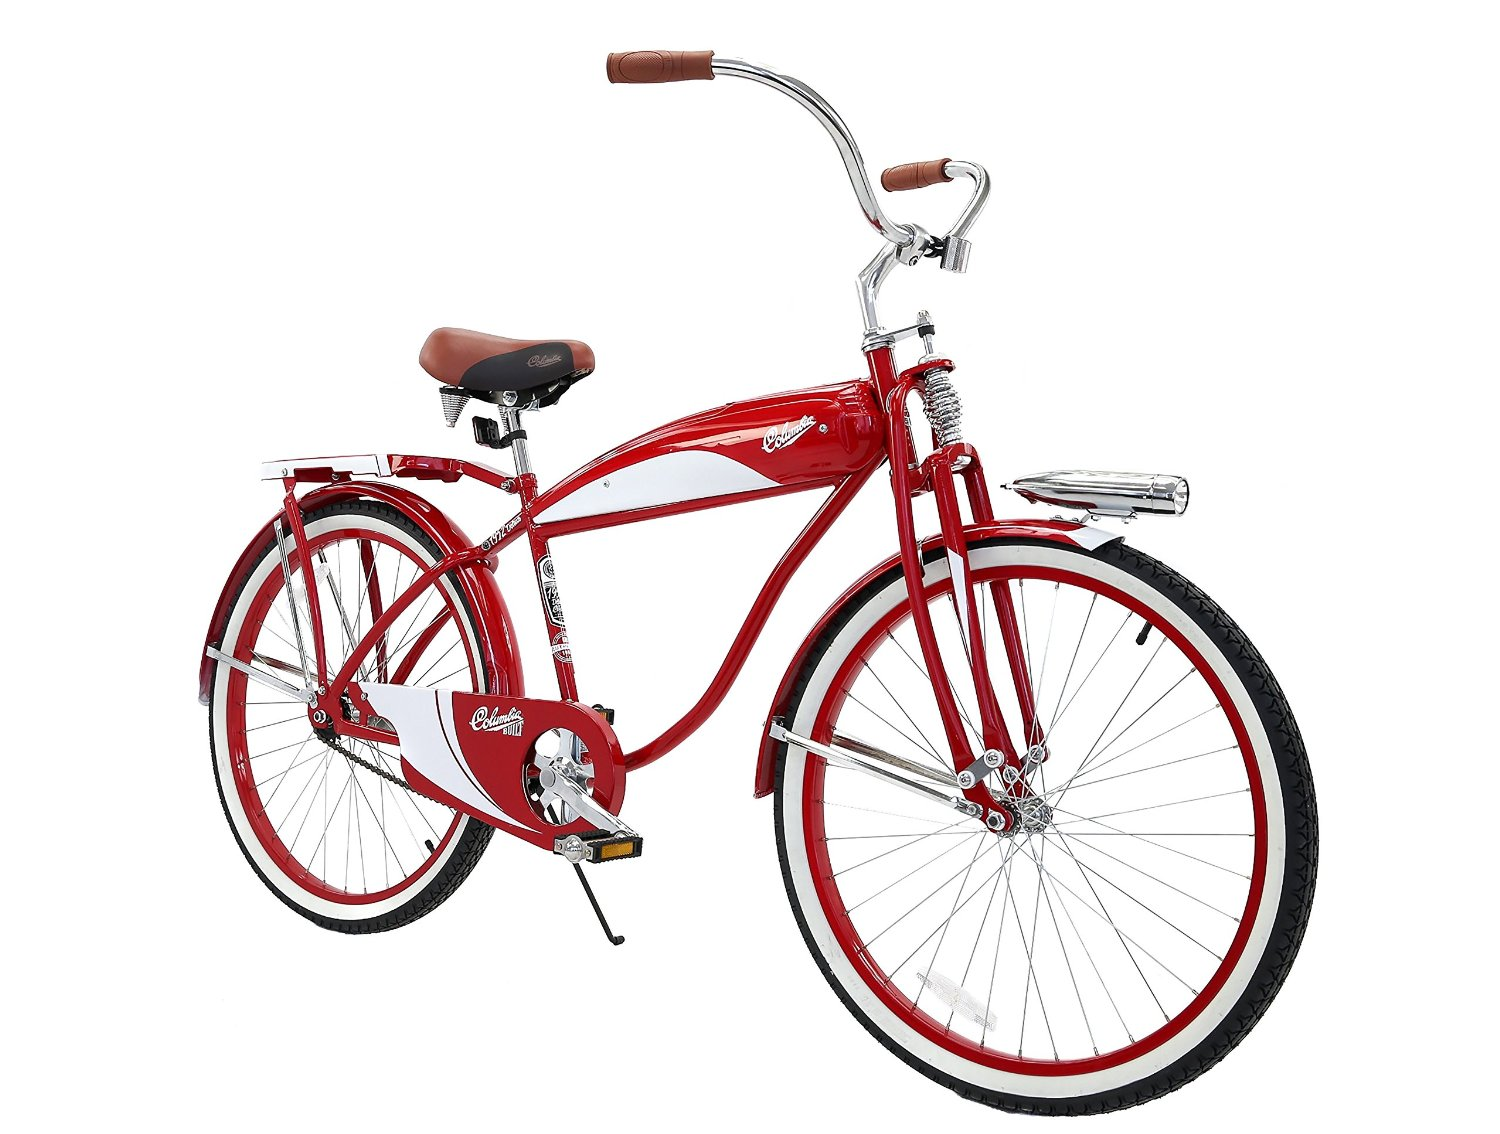 Retro Cruiser Bicycles Best Seller Bicycle Review